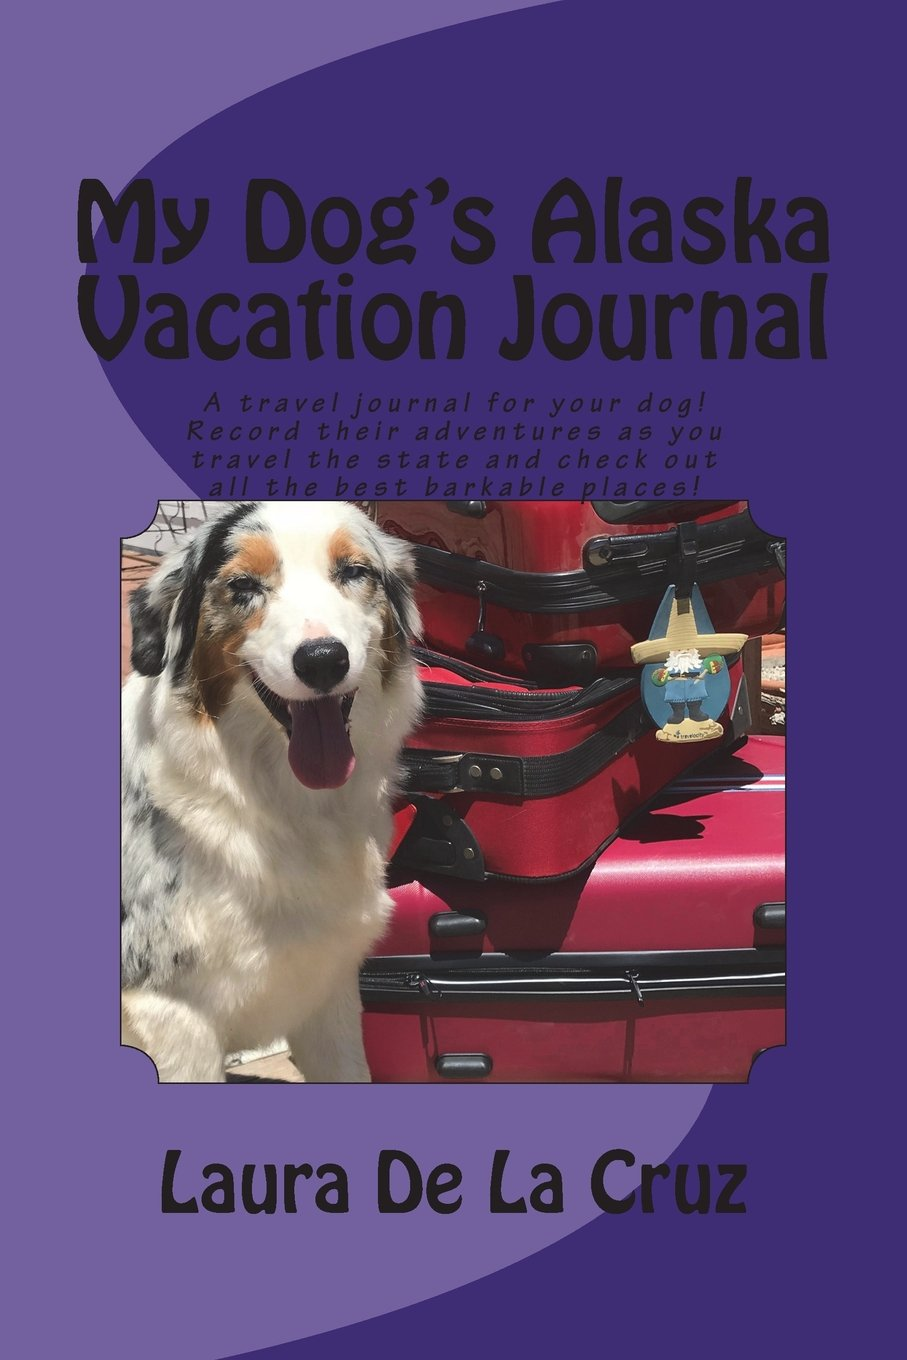 My Dog's Alaska Vacation Journal: A travel journal for your dog! Record their adventures as you travel the state and check out all the best barkable places! ebook